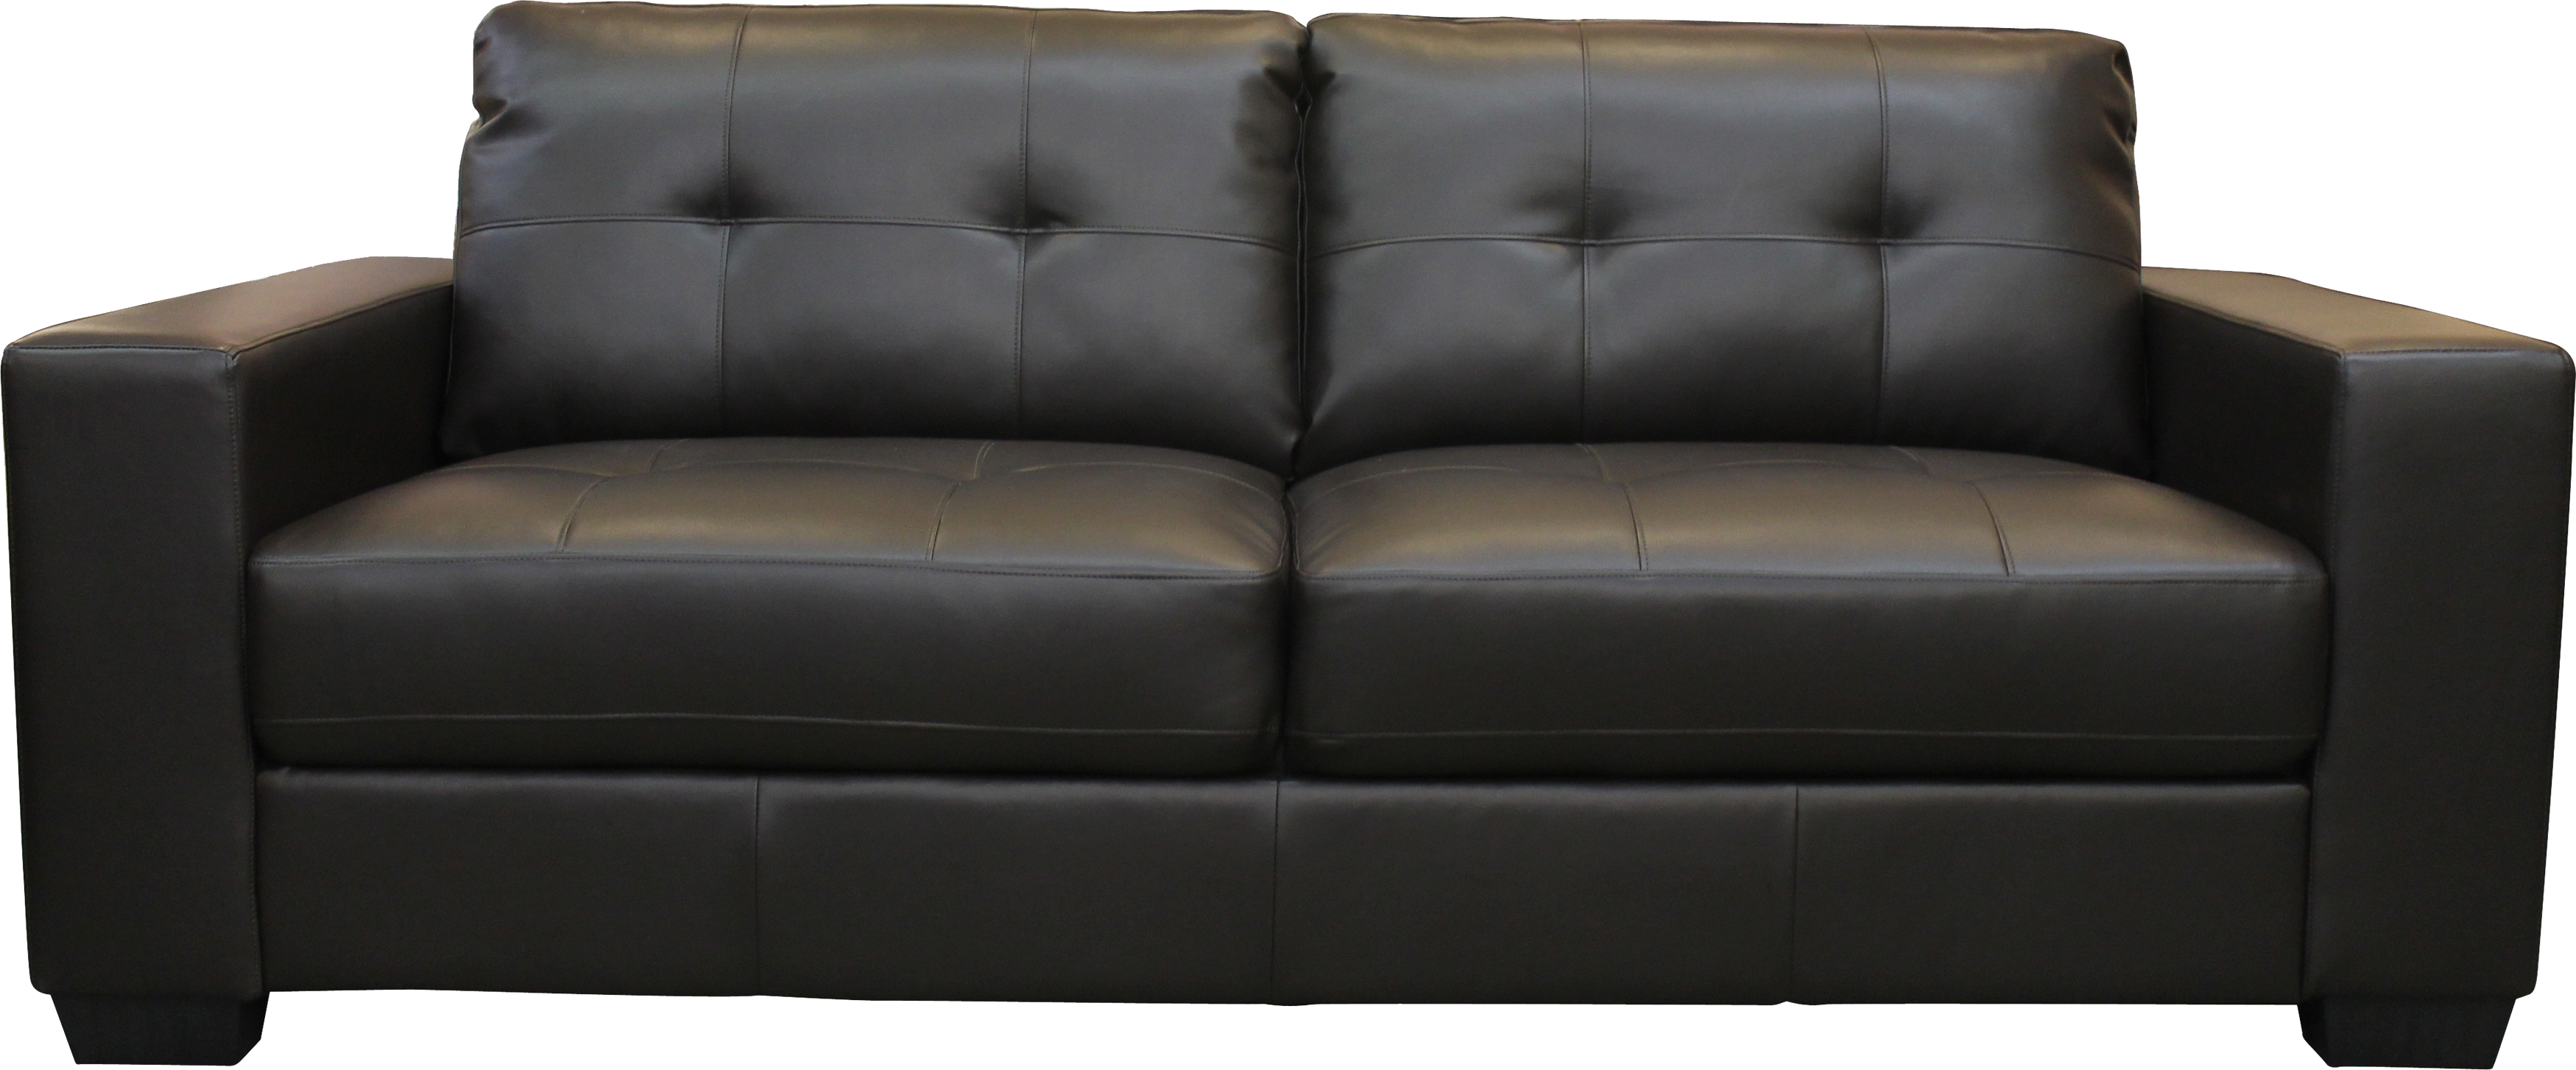 leather couch png